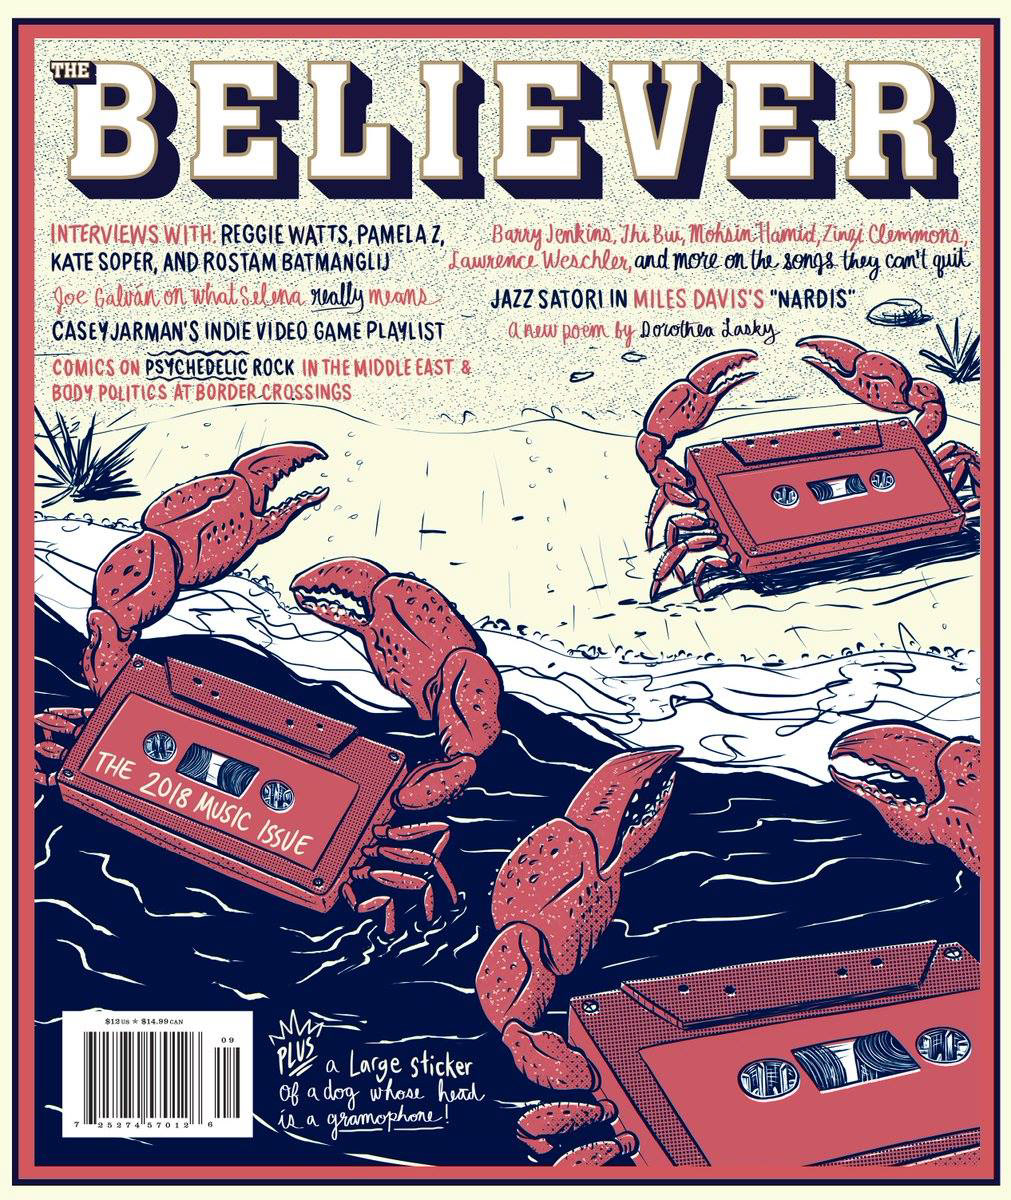 Jarett Sitter, The Believer: The Music Issue